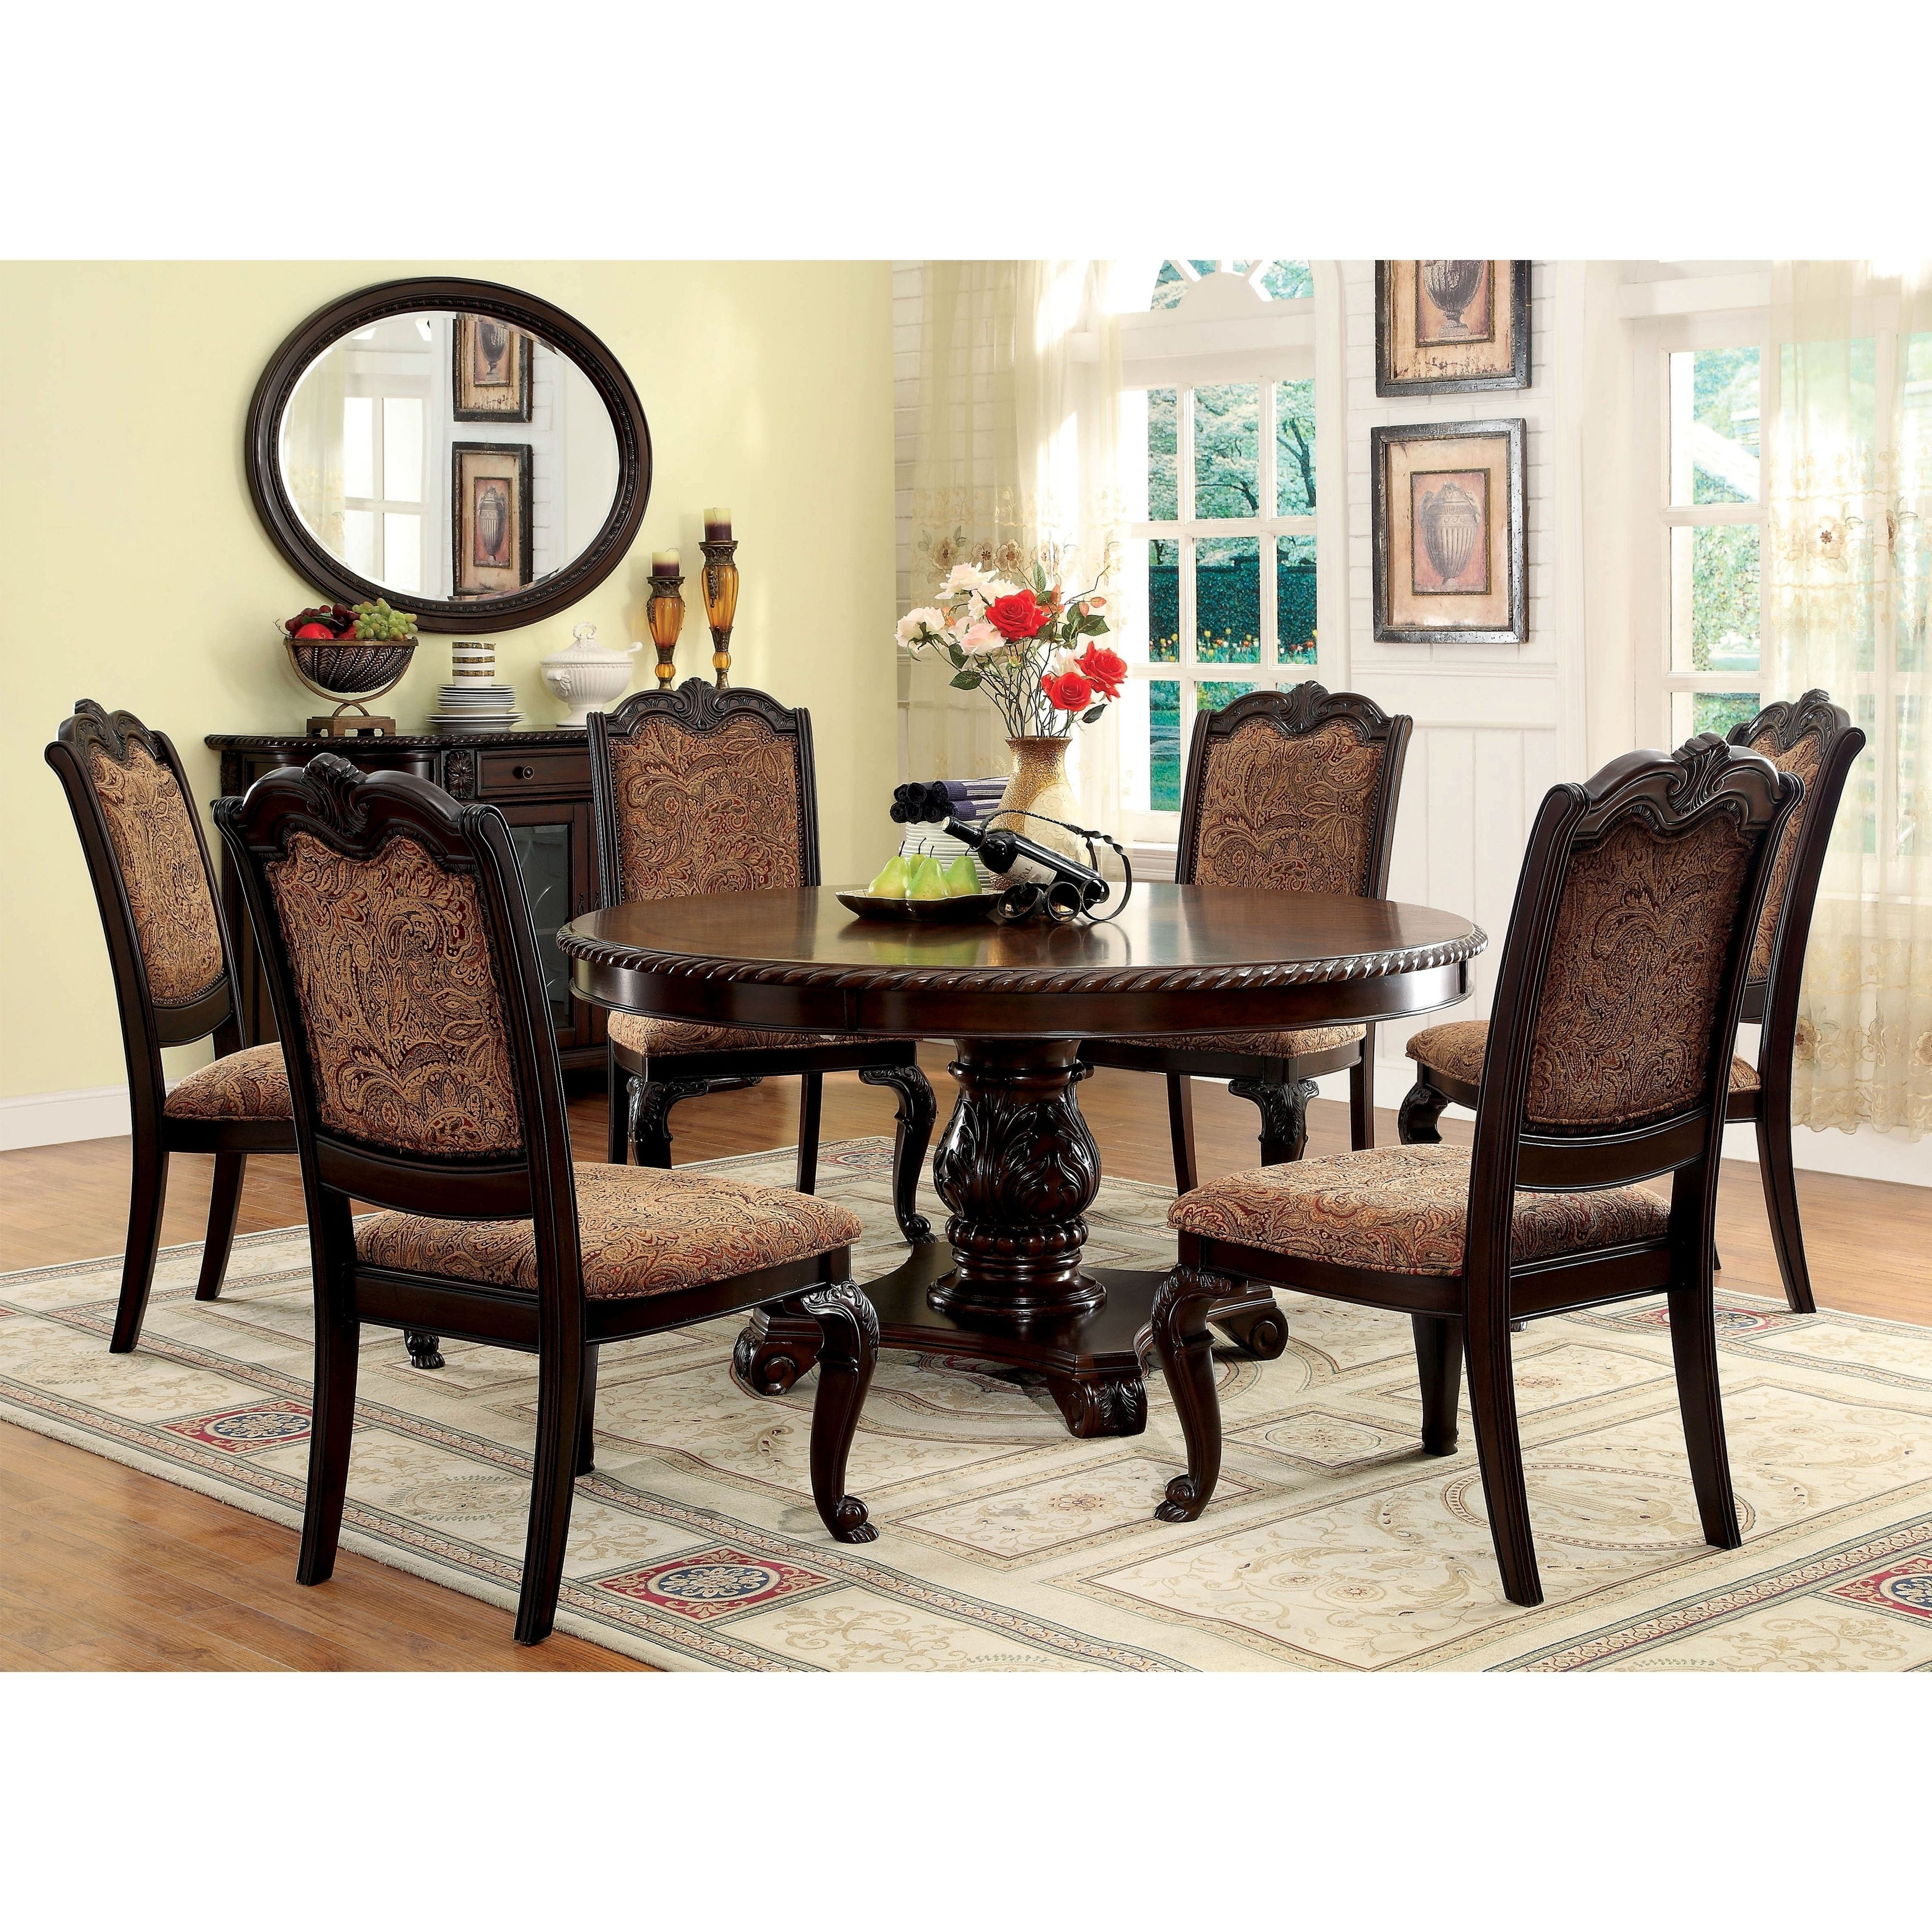 Furniture Of America Oskarre Iii Brown Cherry (Red) 7 Piece Formal Pertaining To 2018 Norwood 9 Piece Rectangle Extension Dining Sets (Image 3 of 20)